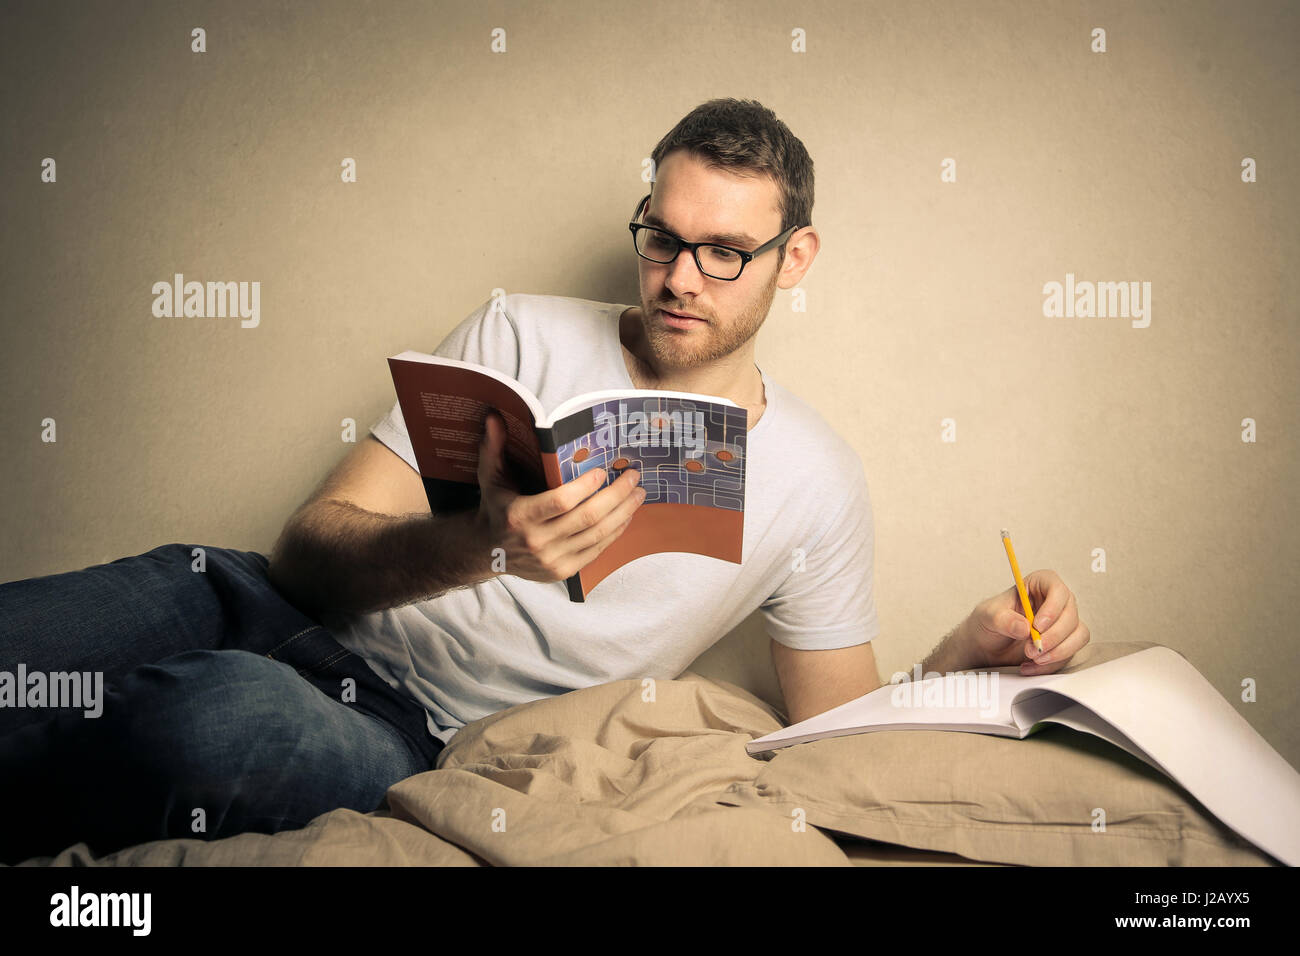 Man studying from books and taking notes - Stock Image